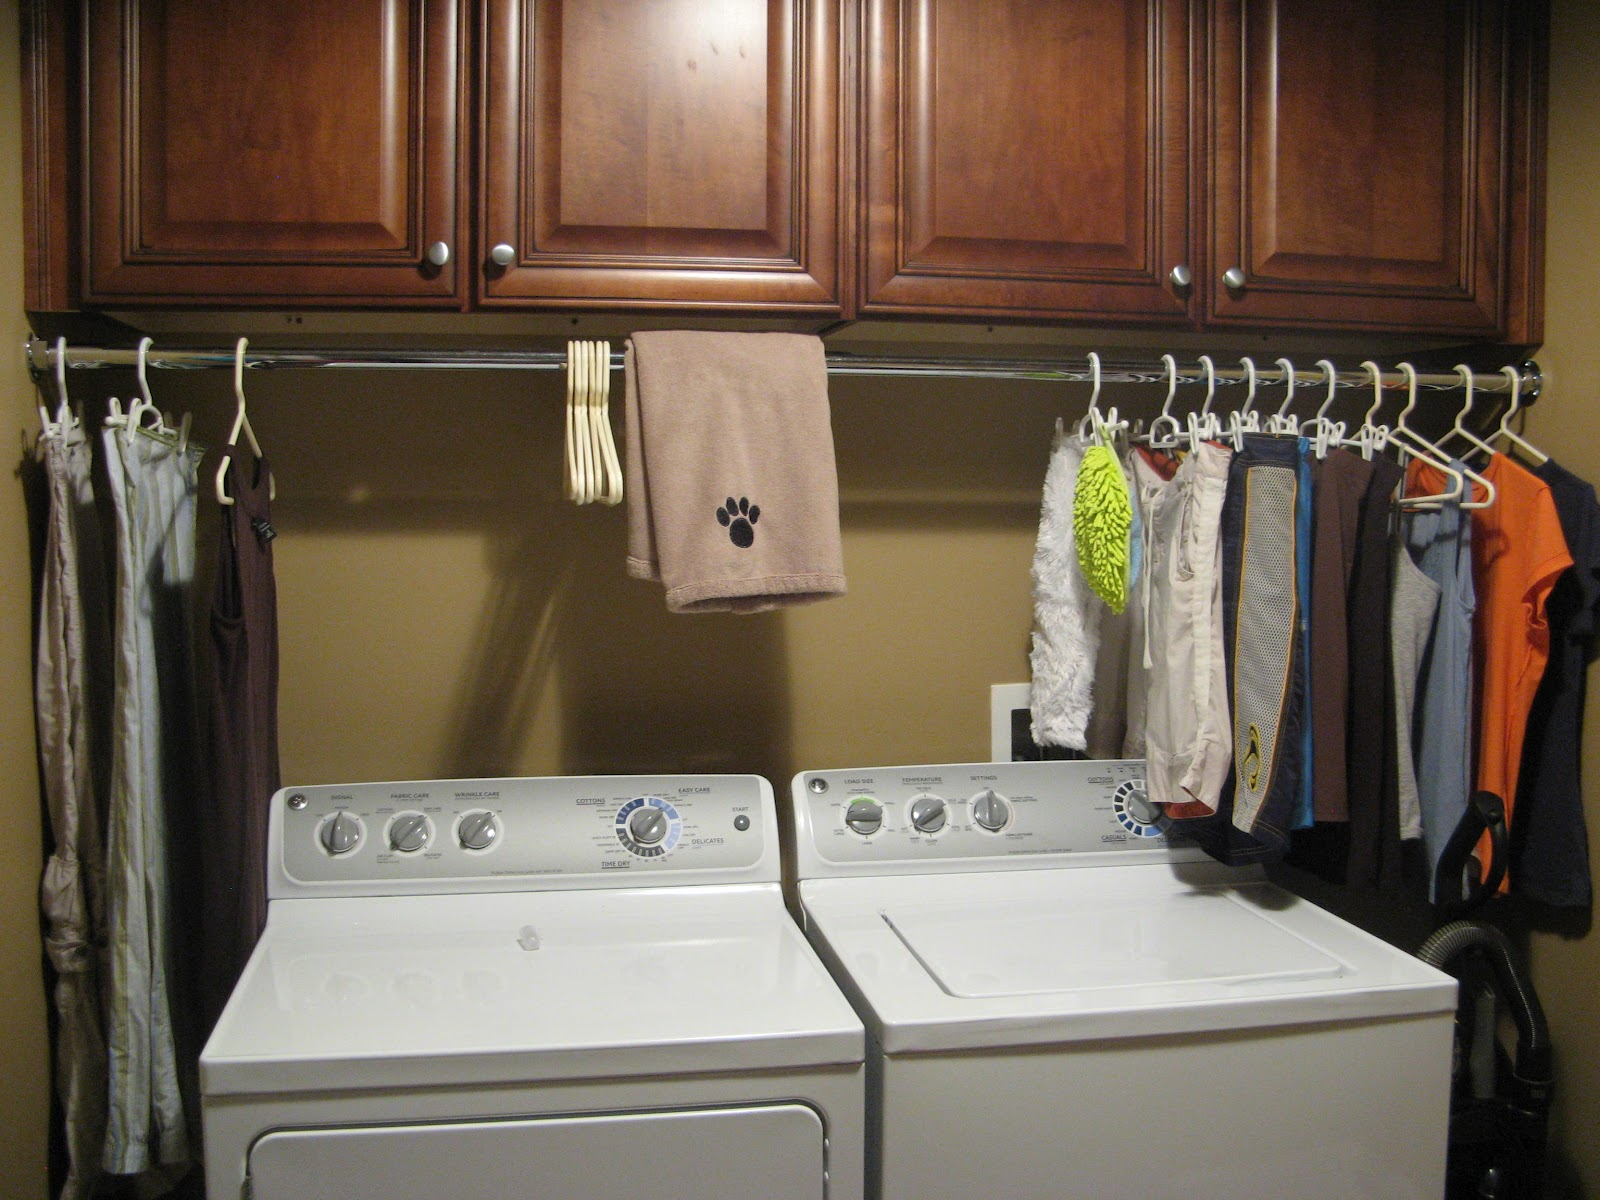 Laundry Room Cabinets With Hanging Bar